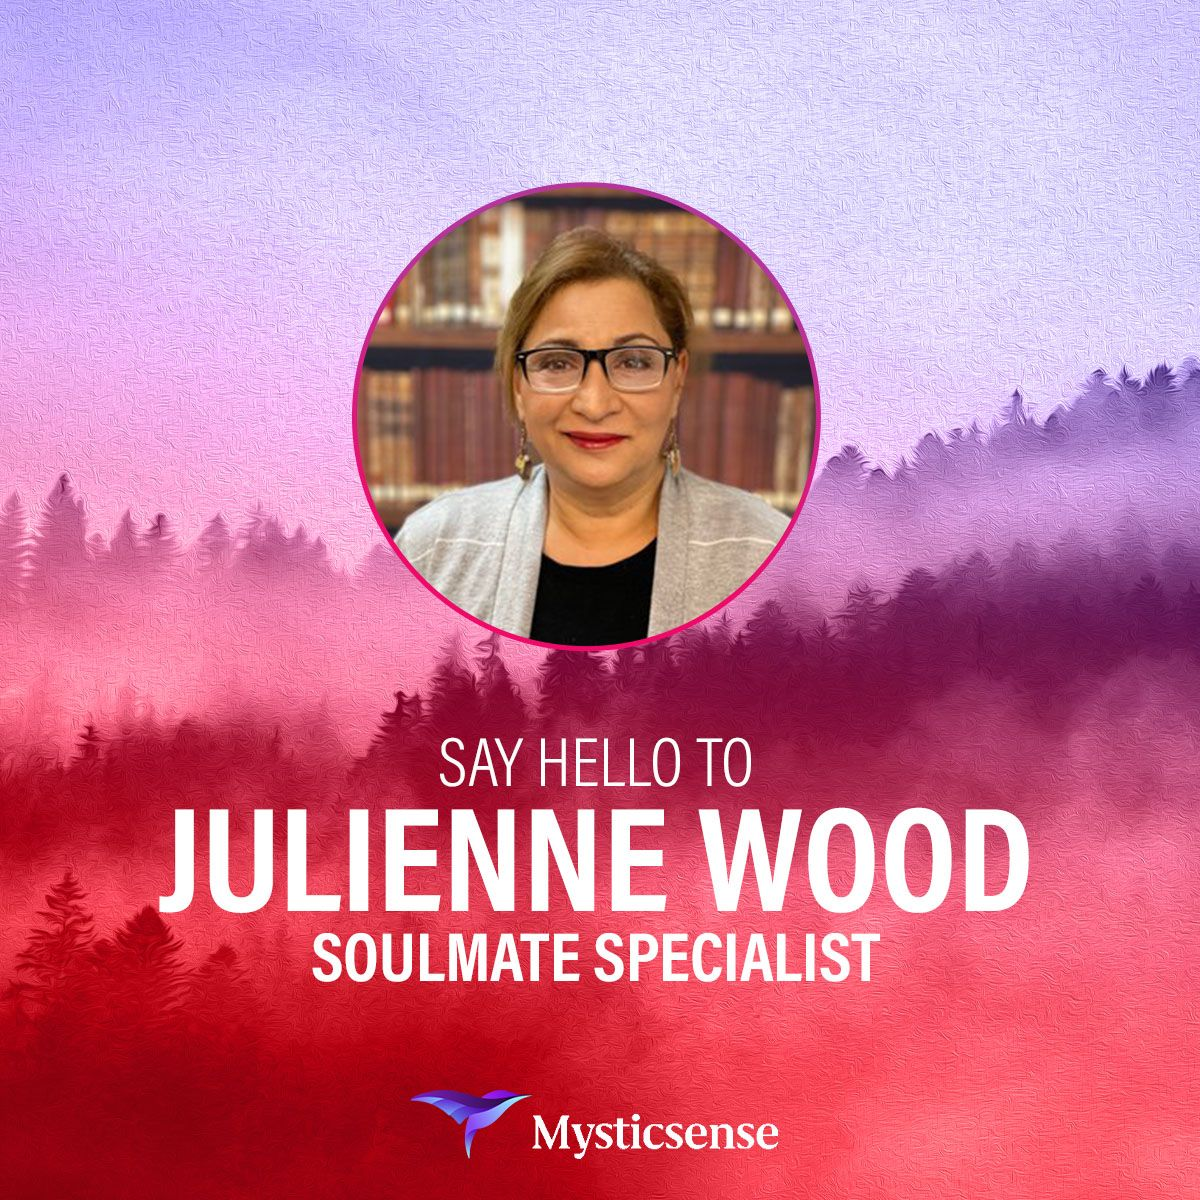 Soulmate Specialist Julienne In 2021 Soulmate Say Hello Psychic Reading